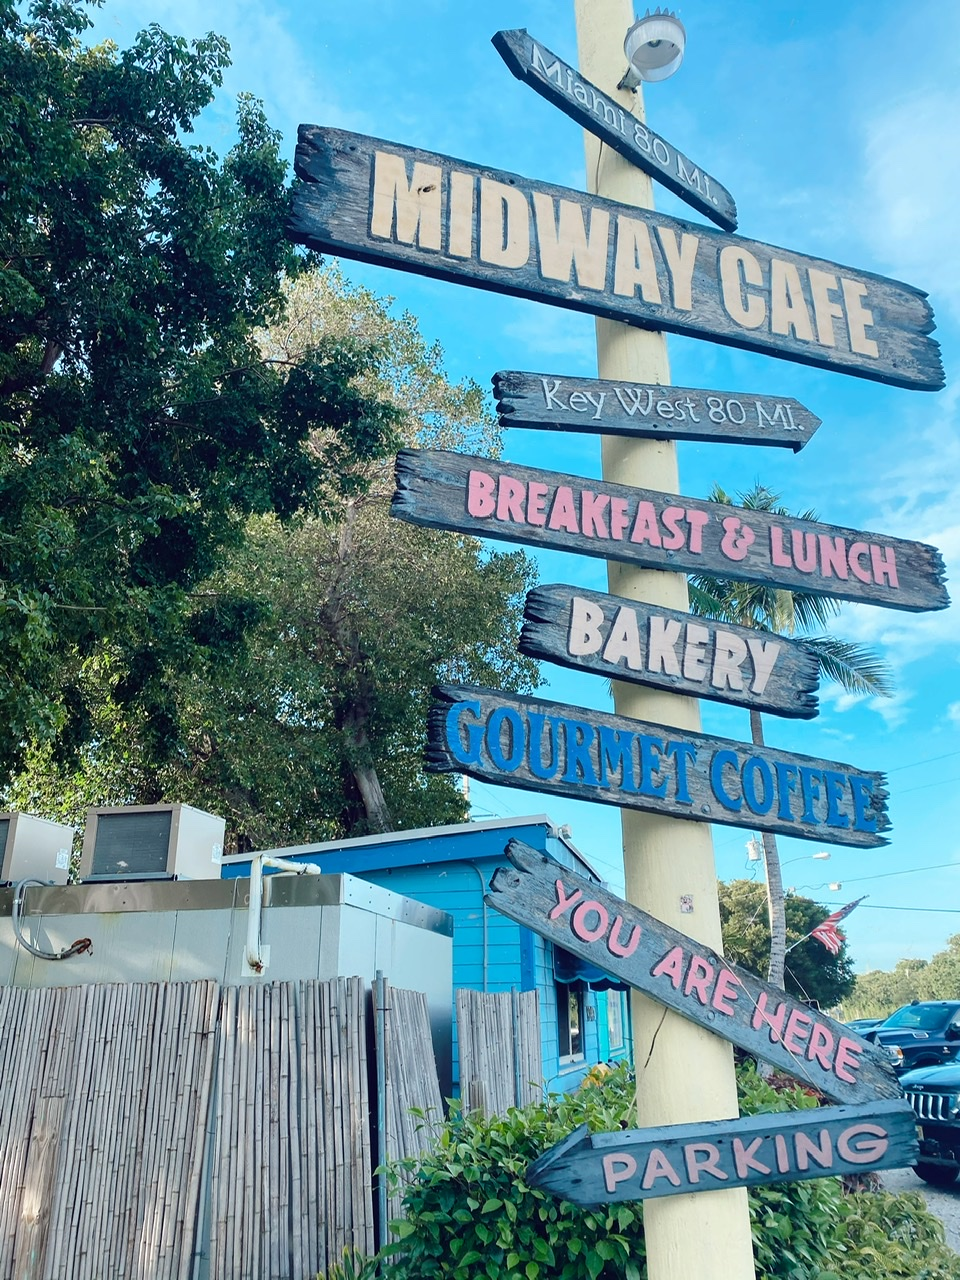 Midway Cafe is the perfect healthy breakfast or lunch spot to grab a smoothie in Islamorada Florida